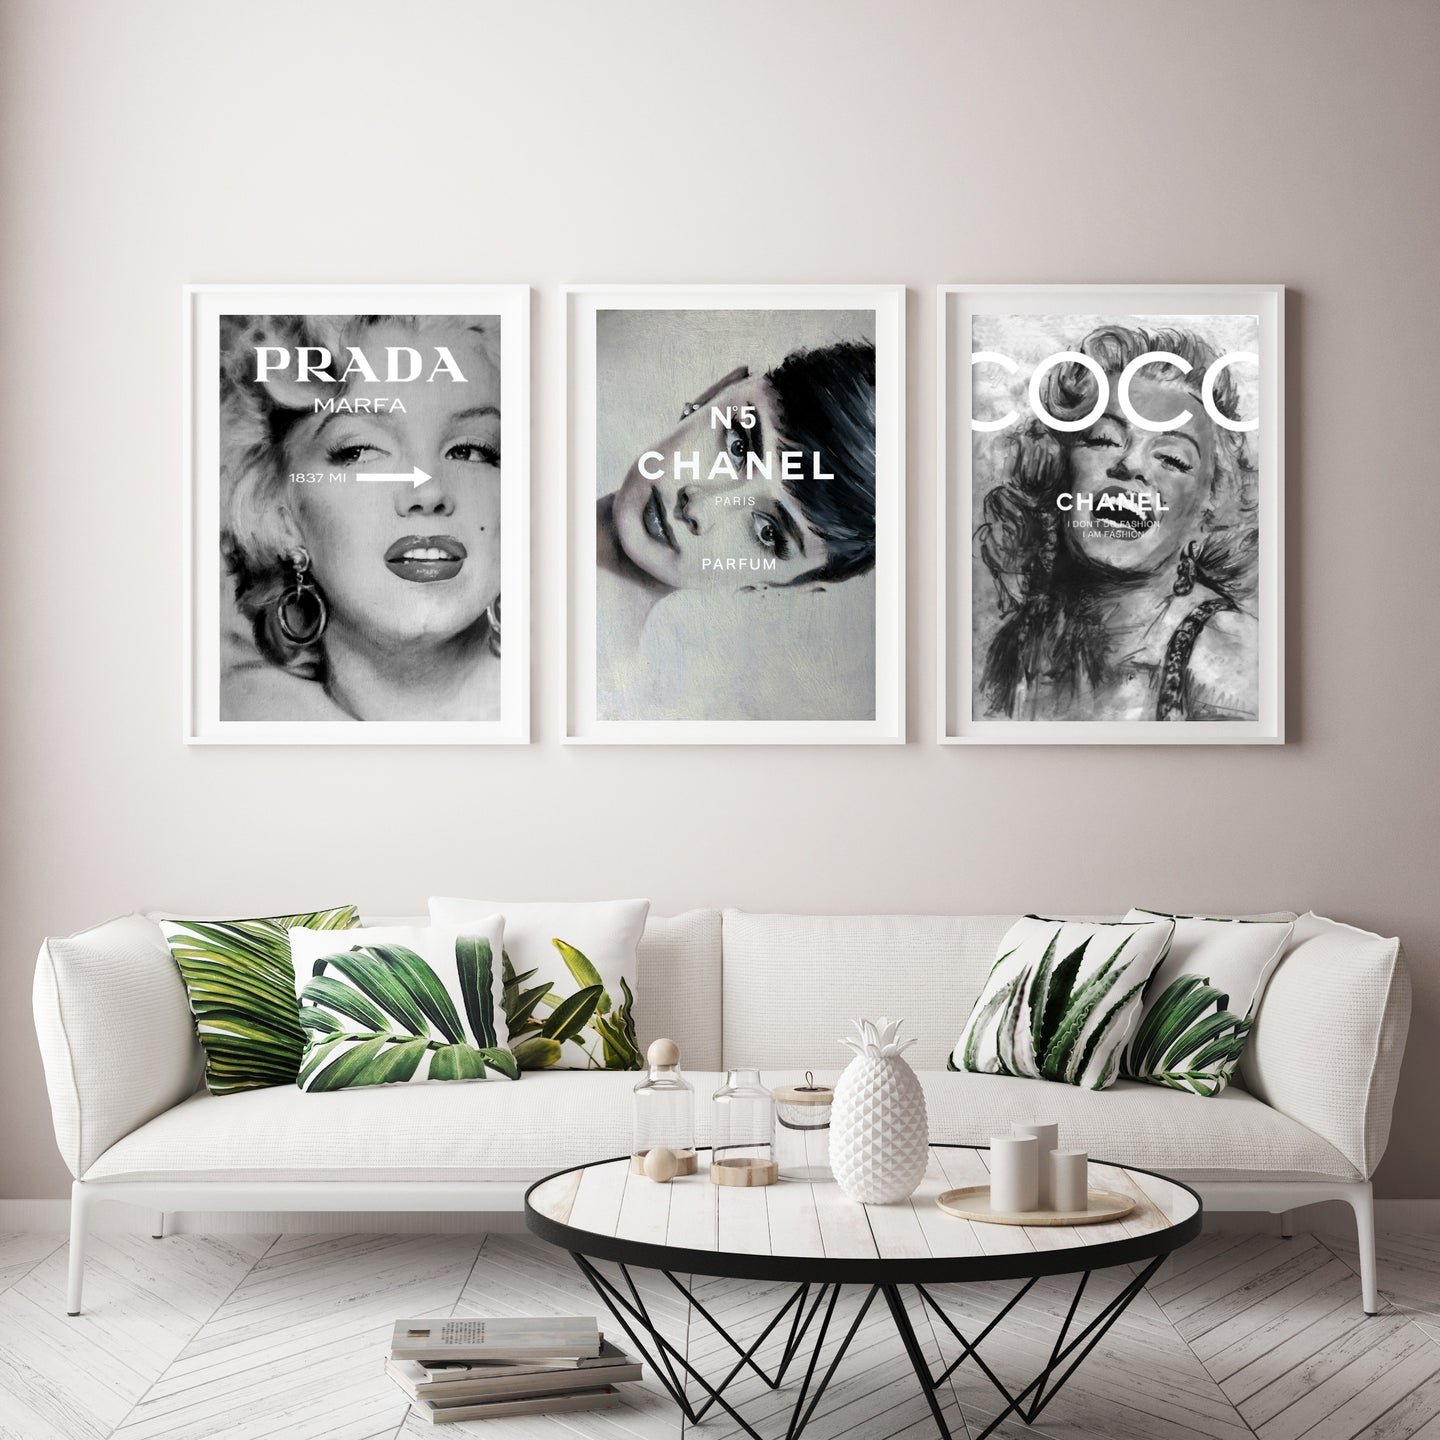 Chanel Prada Marilyn Monroe and Audrey Hepburn print set